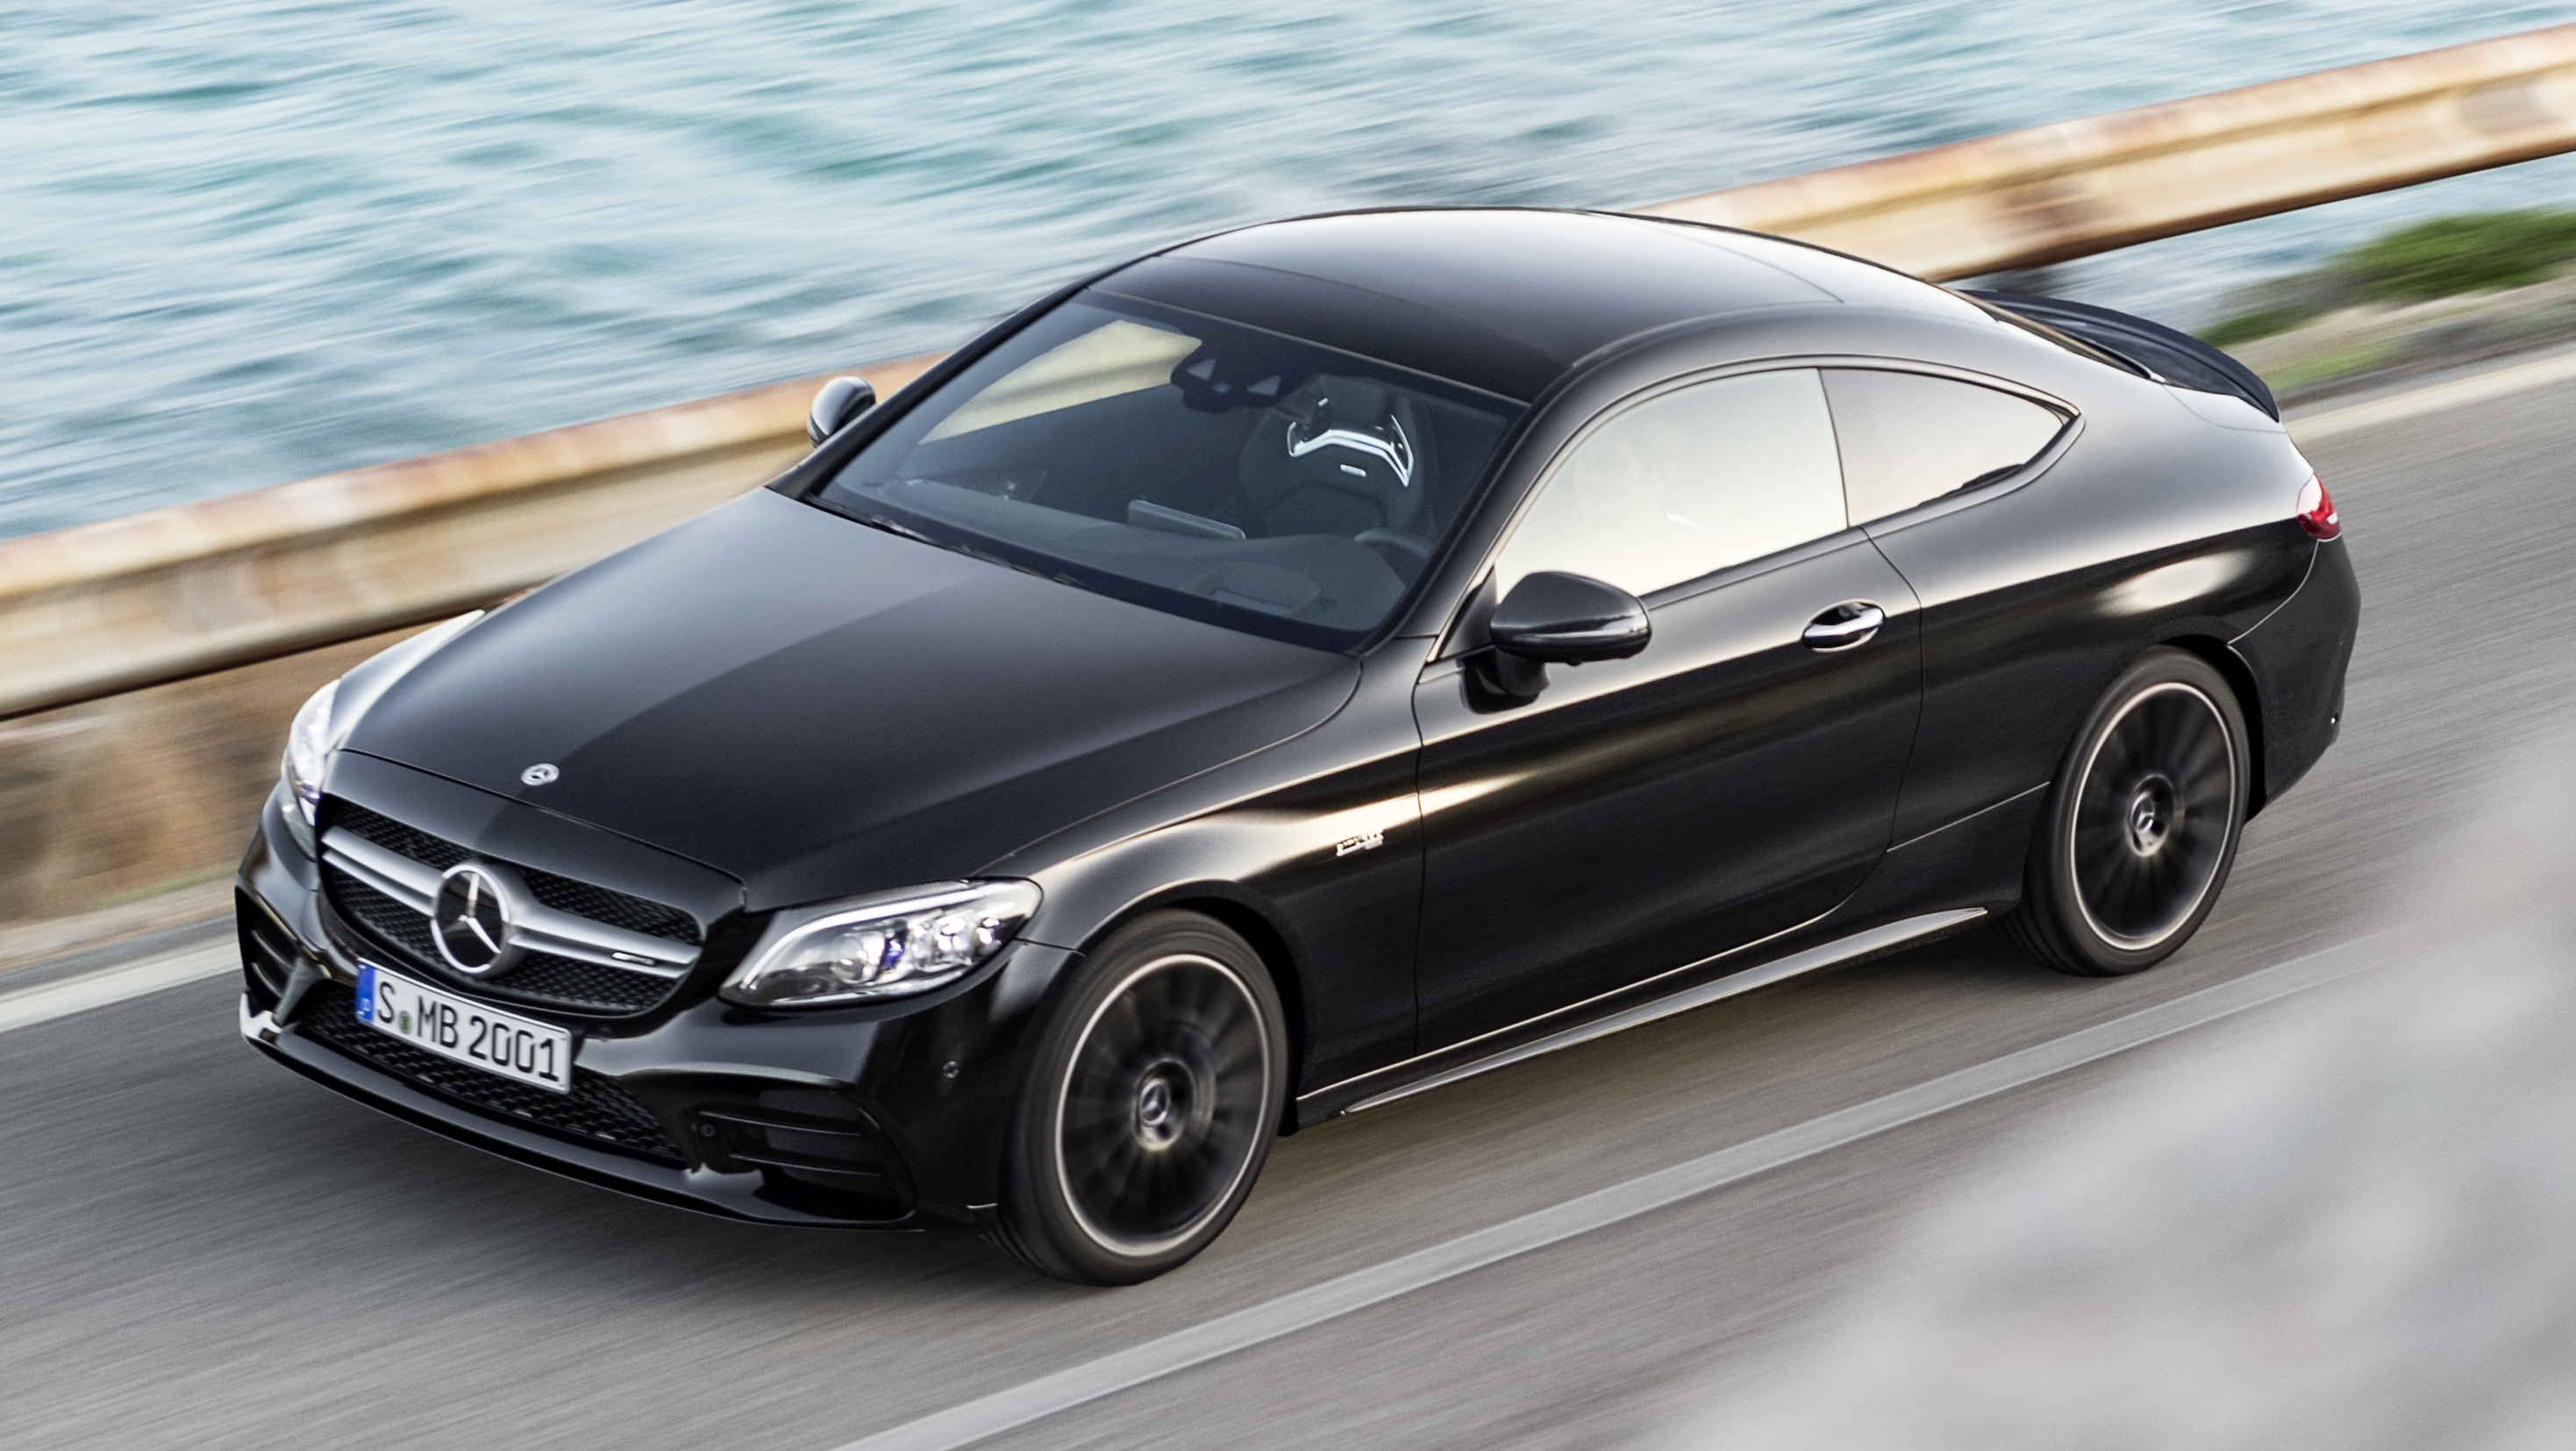 c205 mercedes amg c43 4matic coupe and a205 c43 4matic cabriolet facelifts debut new kit and. Black Bedroom Furniture Sets. Home Design Ideas